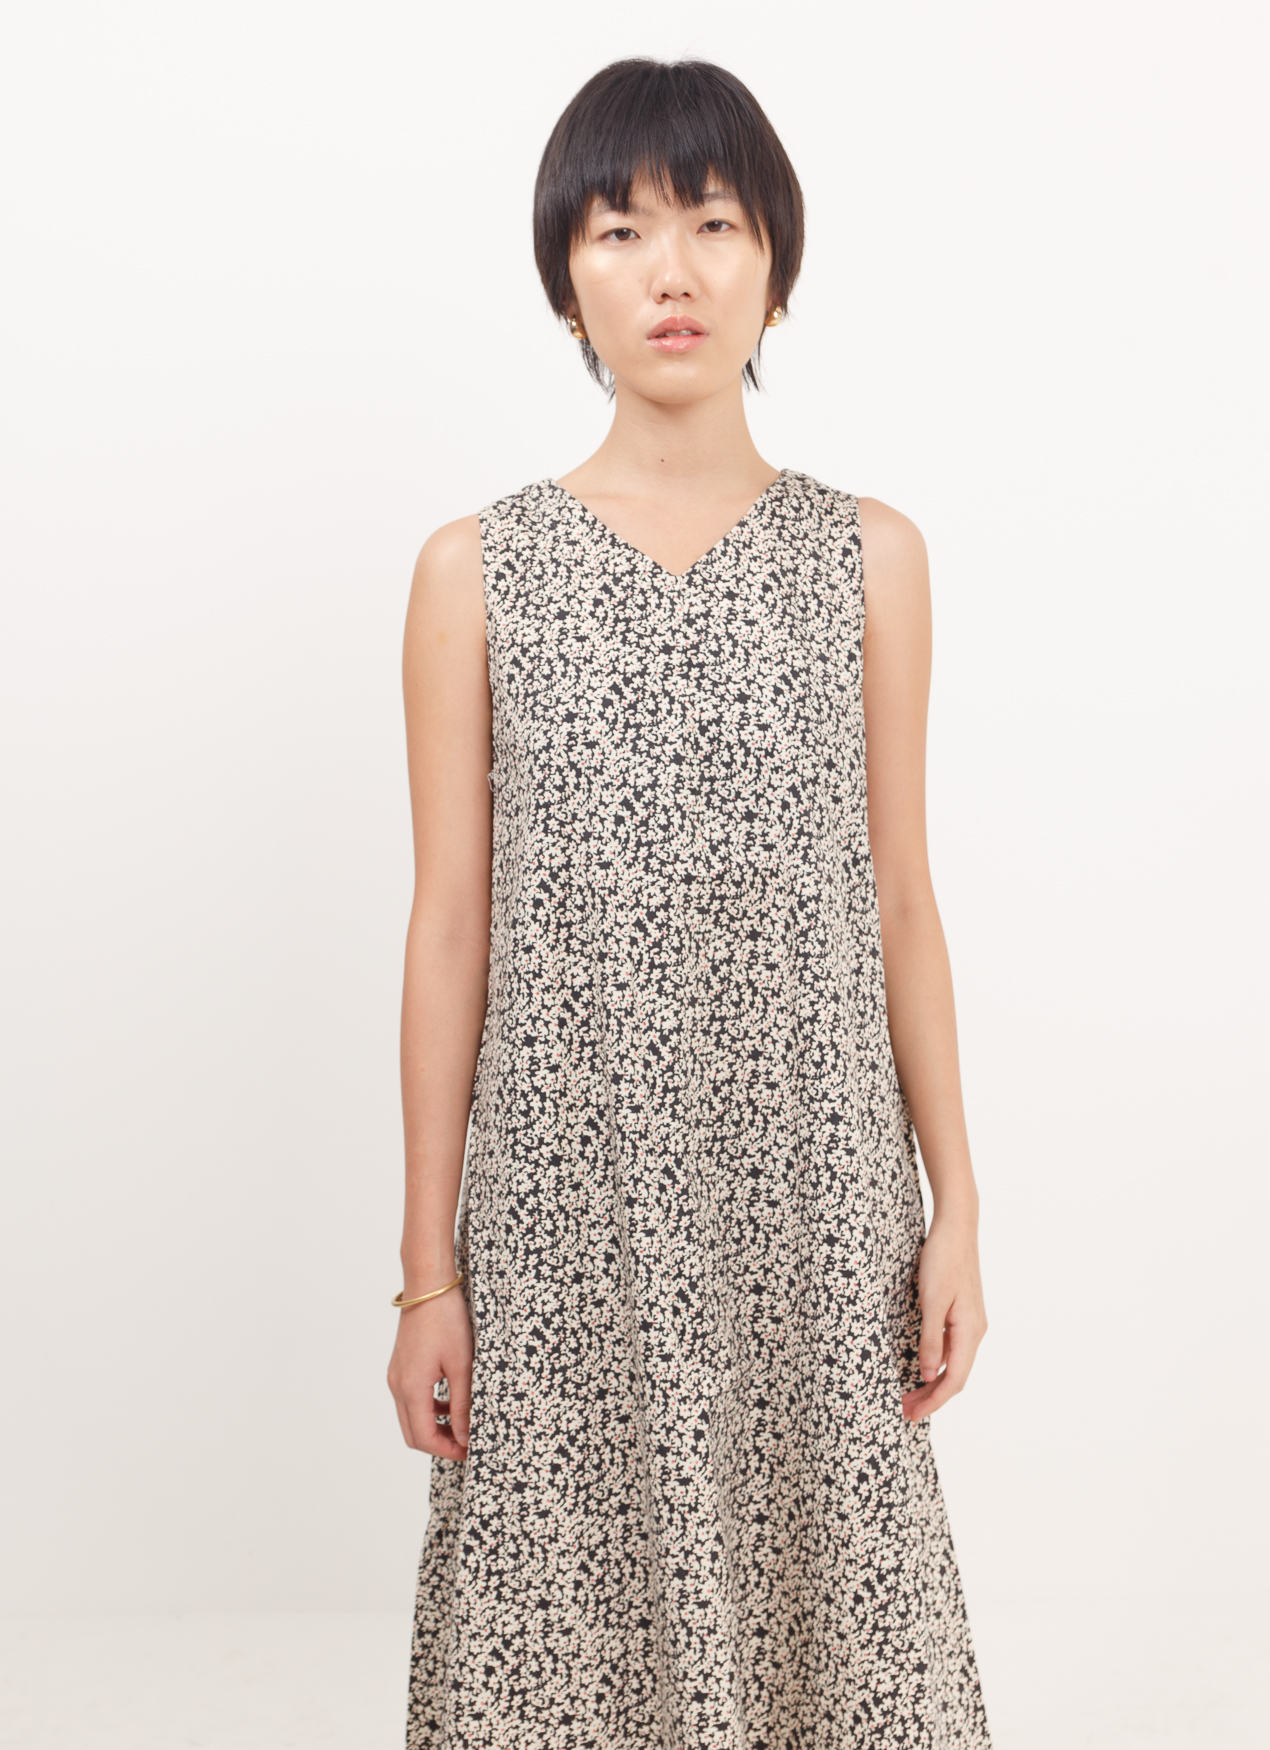 American Holic Geralda Dress - Small Flower